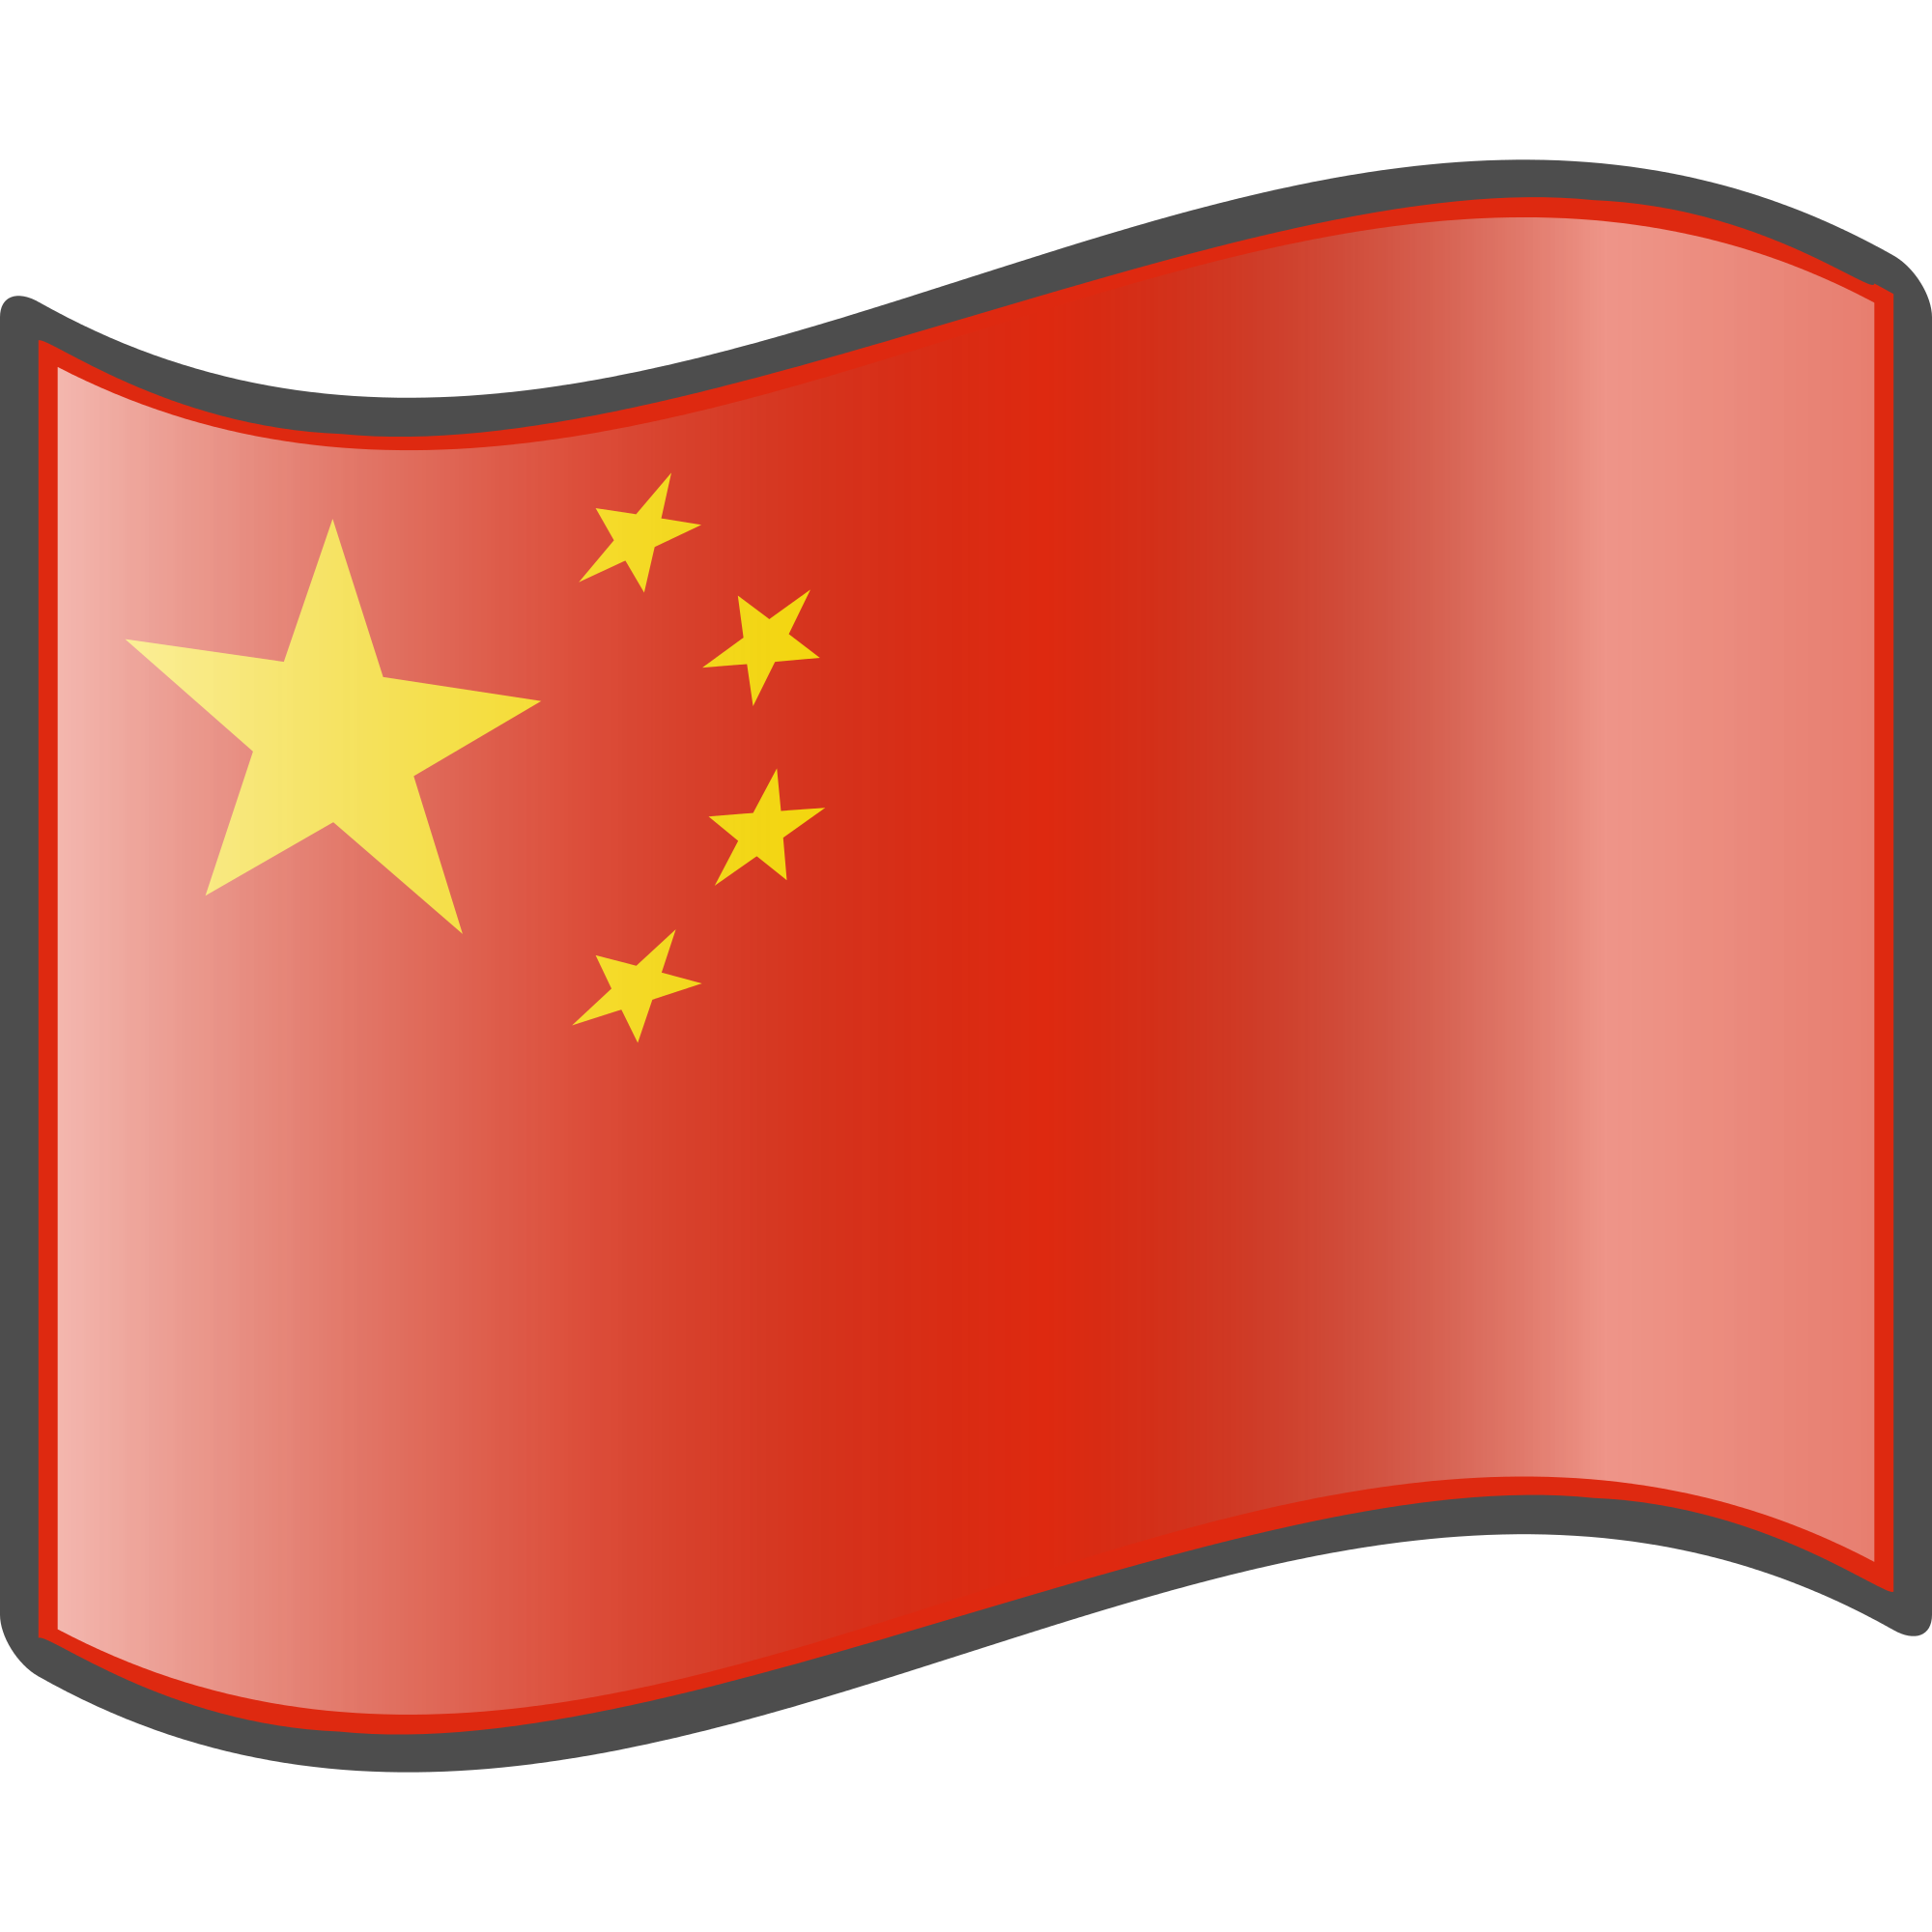 svg free download chinese flag clipart #63134380